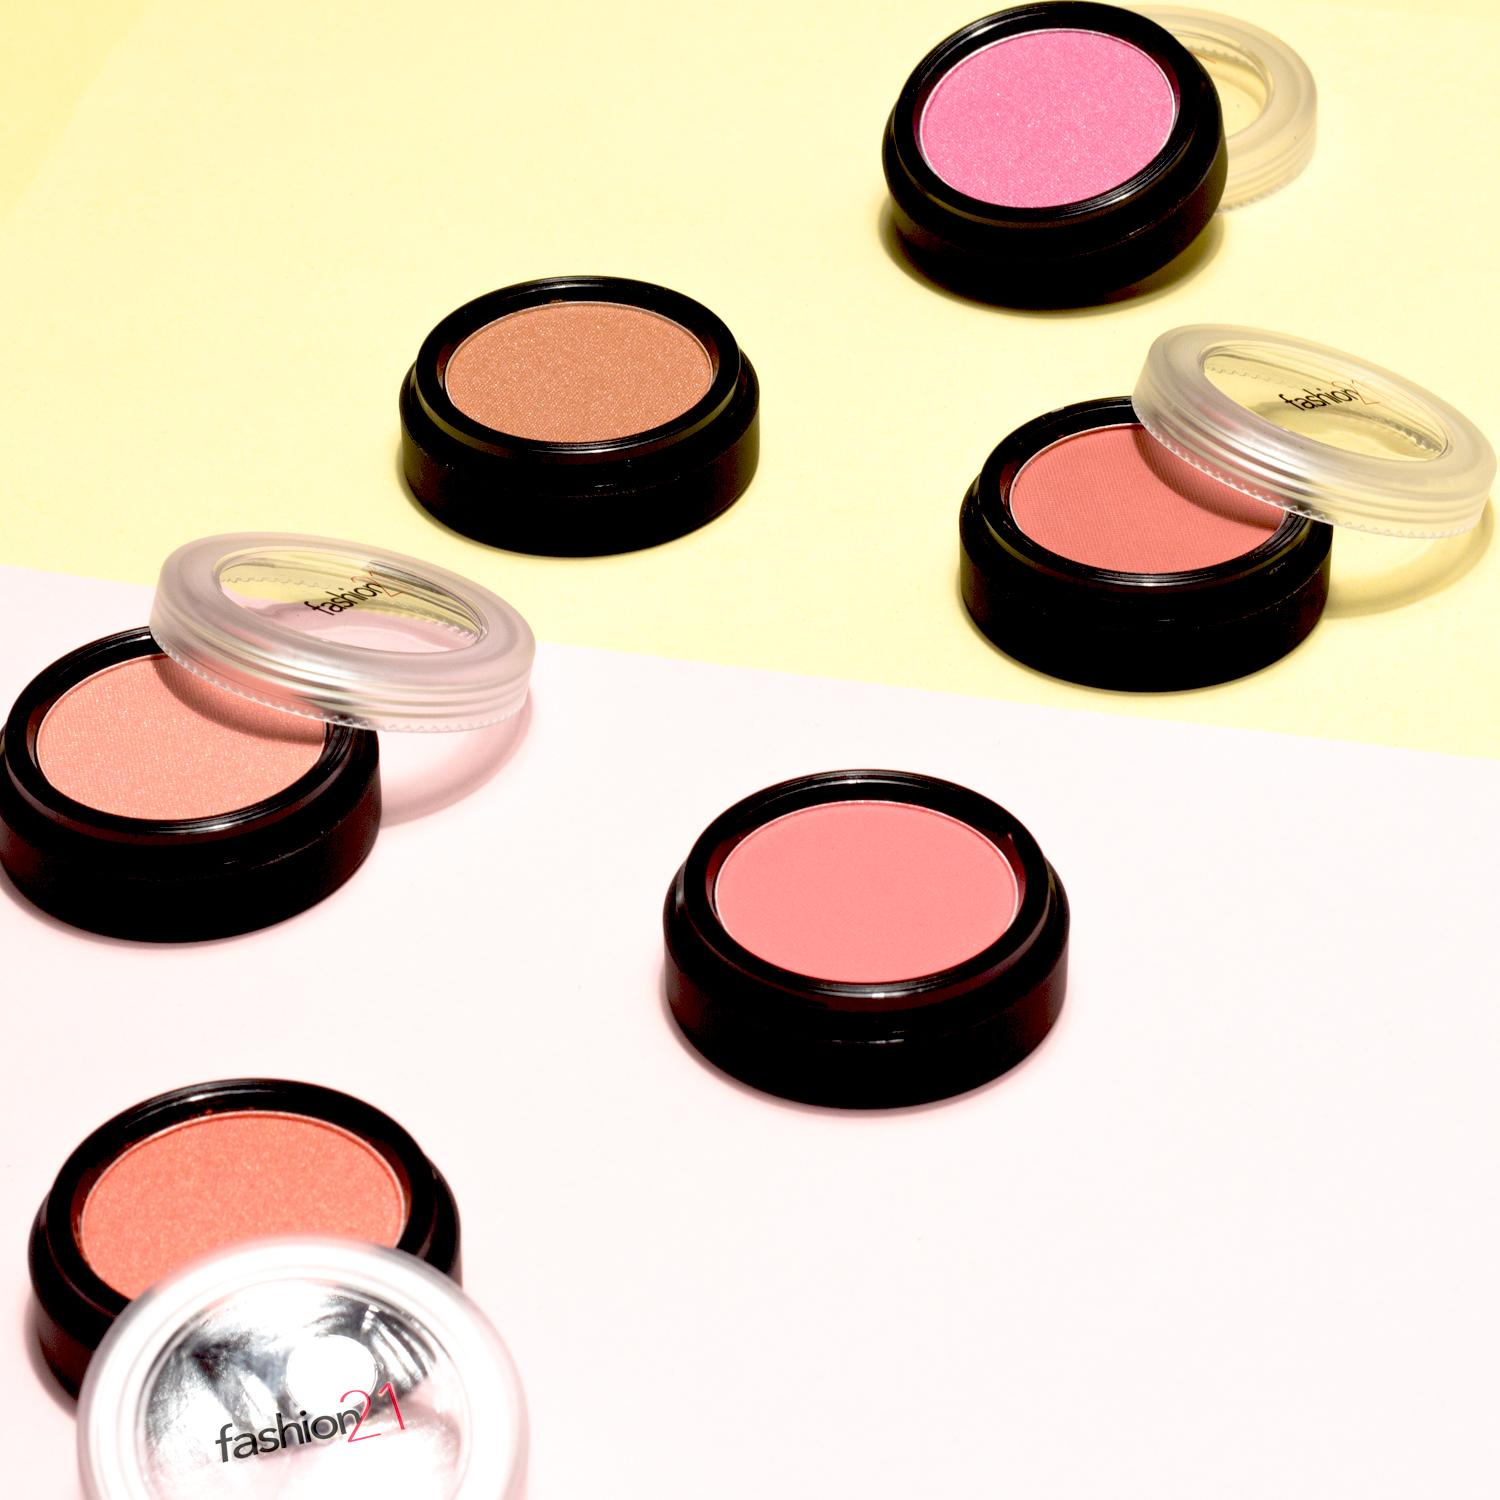 Fashion21 Single Blush On Philippines